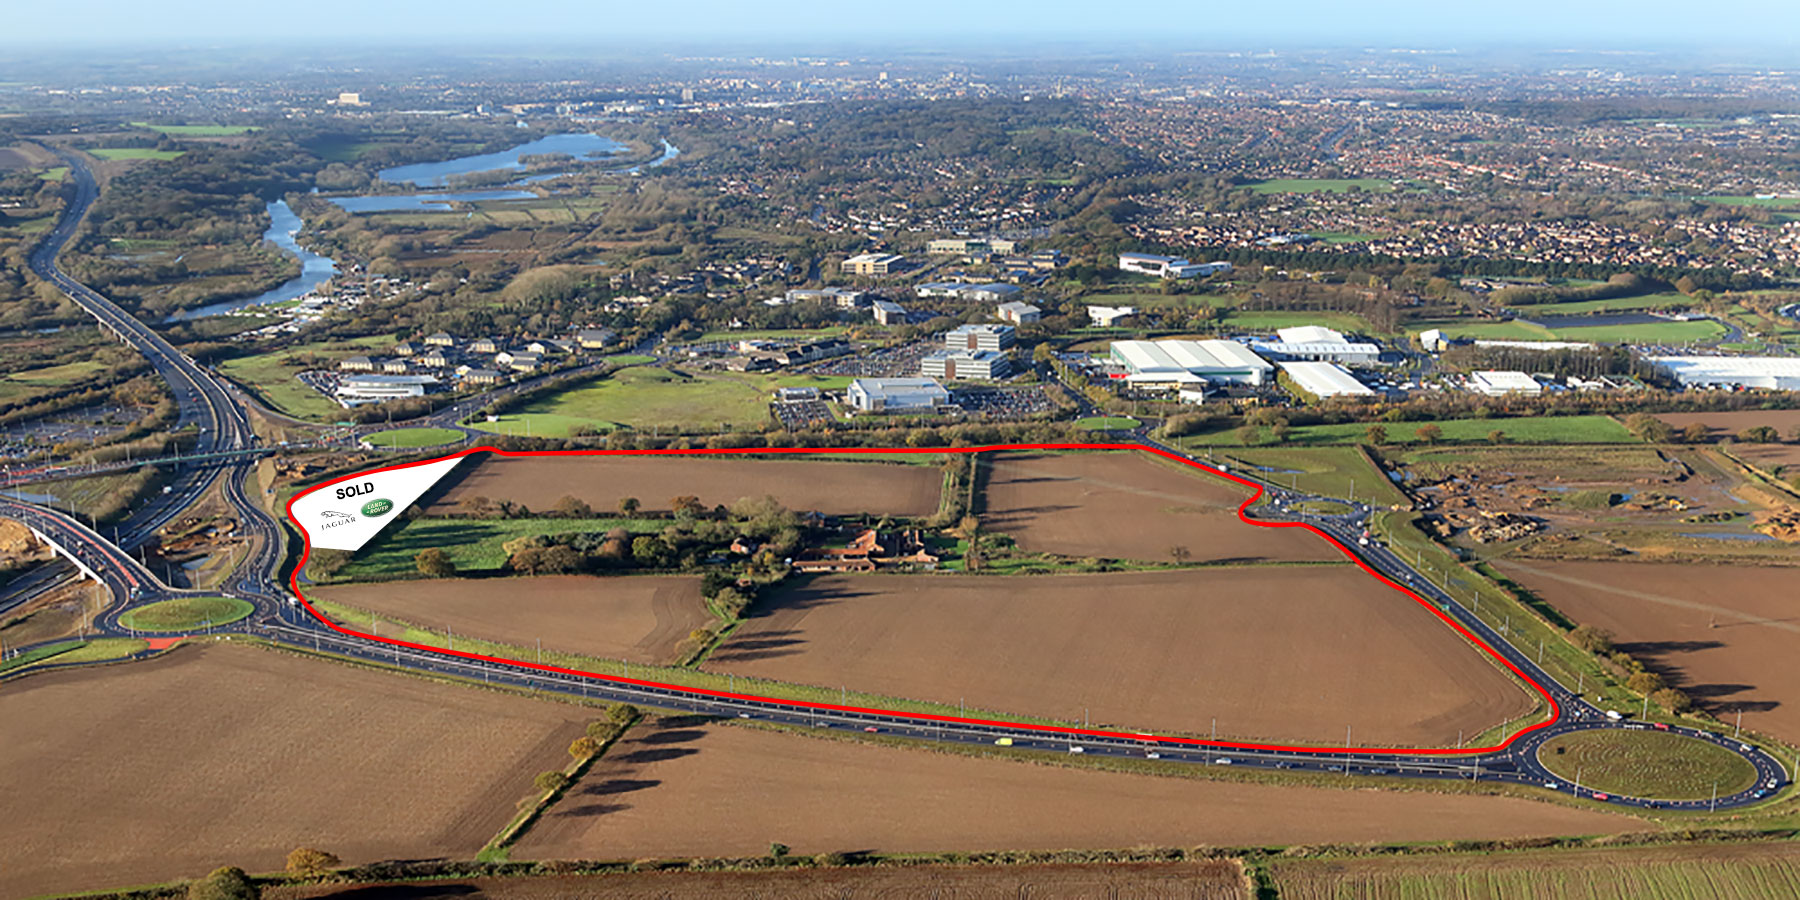 A highly accessible destination on the interchange between the new Broadland Northway and A47 with planning consent for employment, car showroom, retail and leisure use